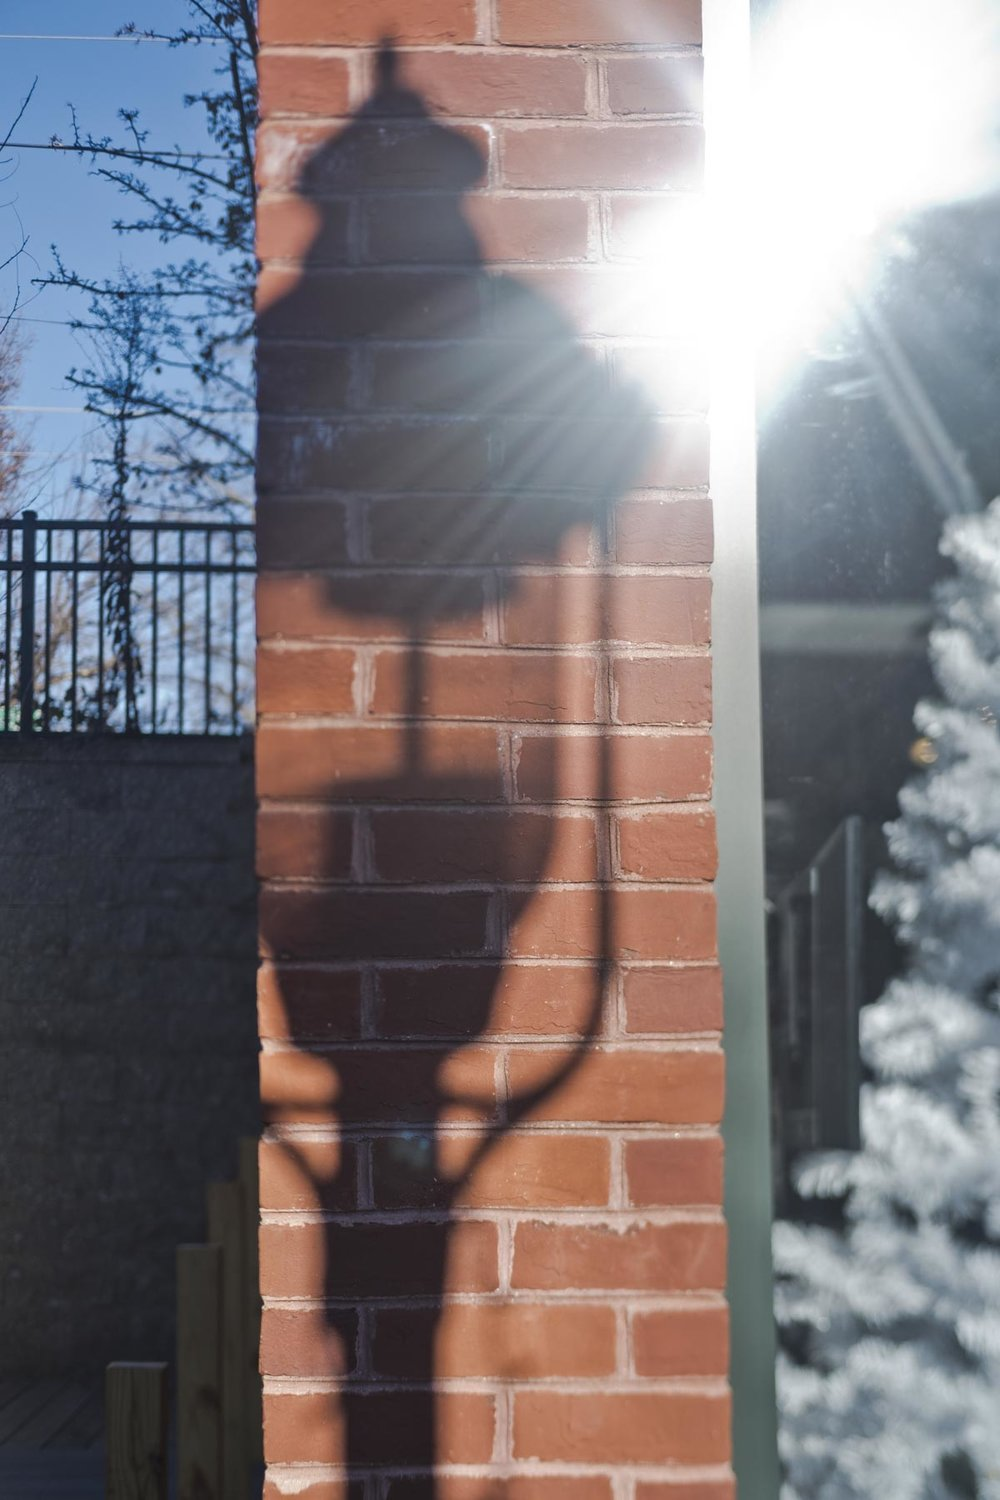 Desaturated red brick with strong shadow of a lamp.